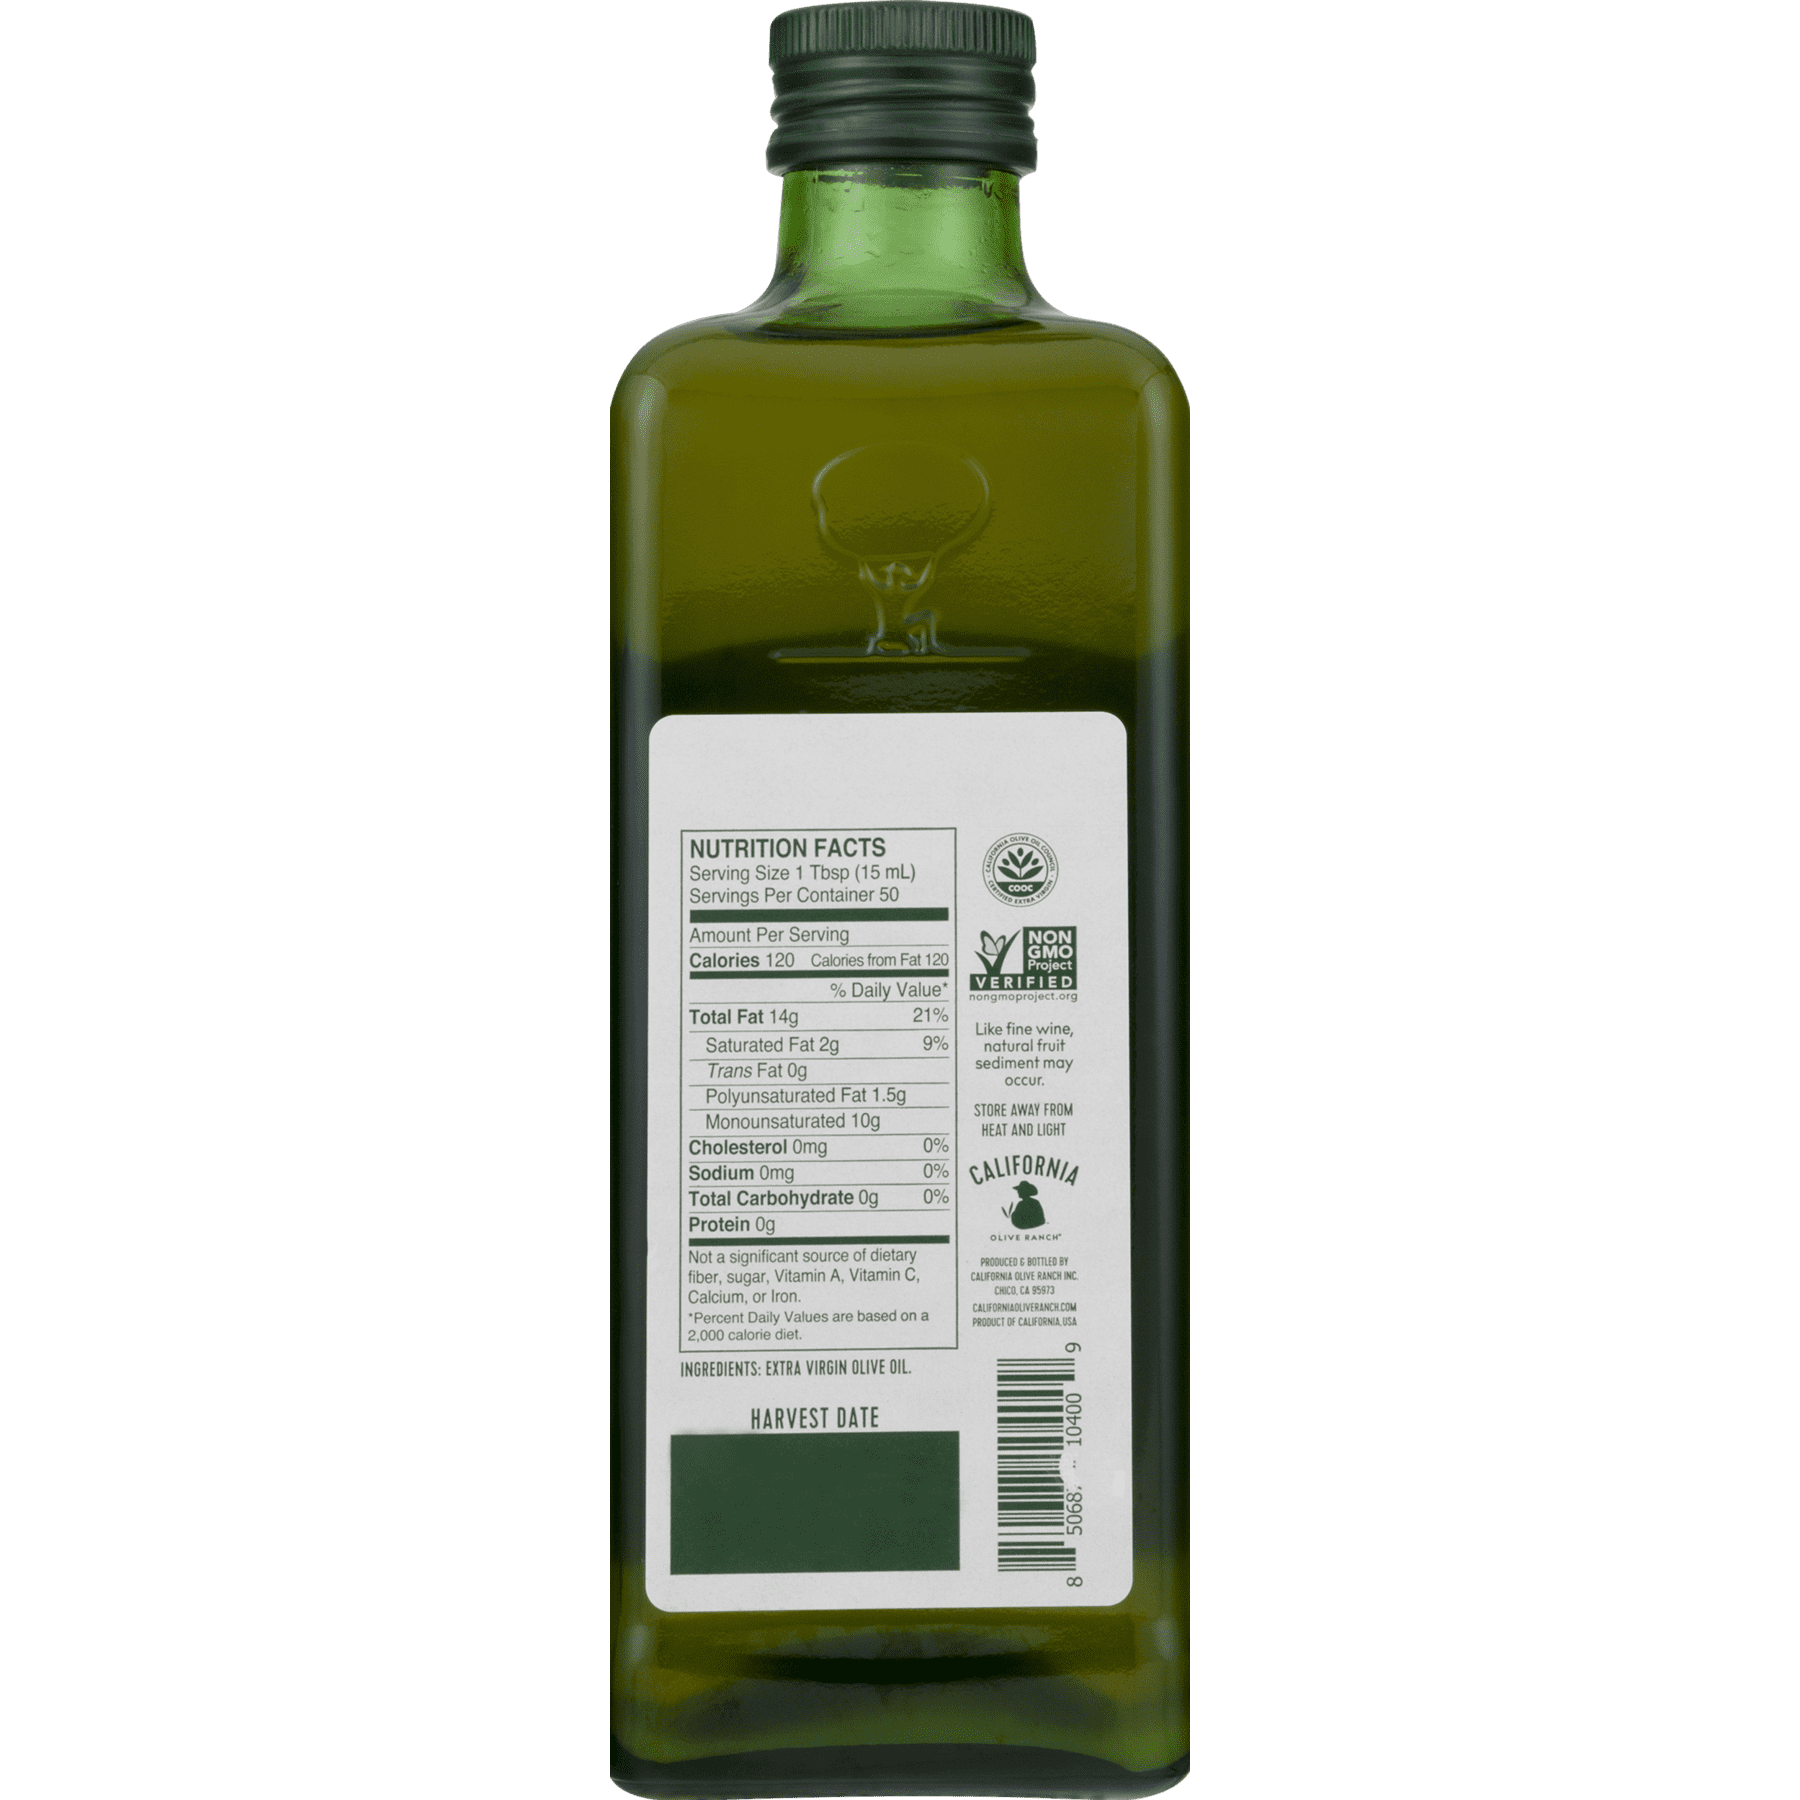 California Olive Ranch Extra Virgin Olive Oil (Destination